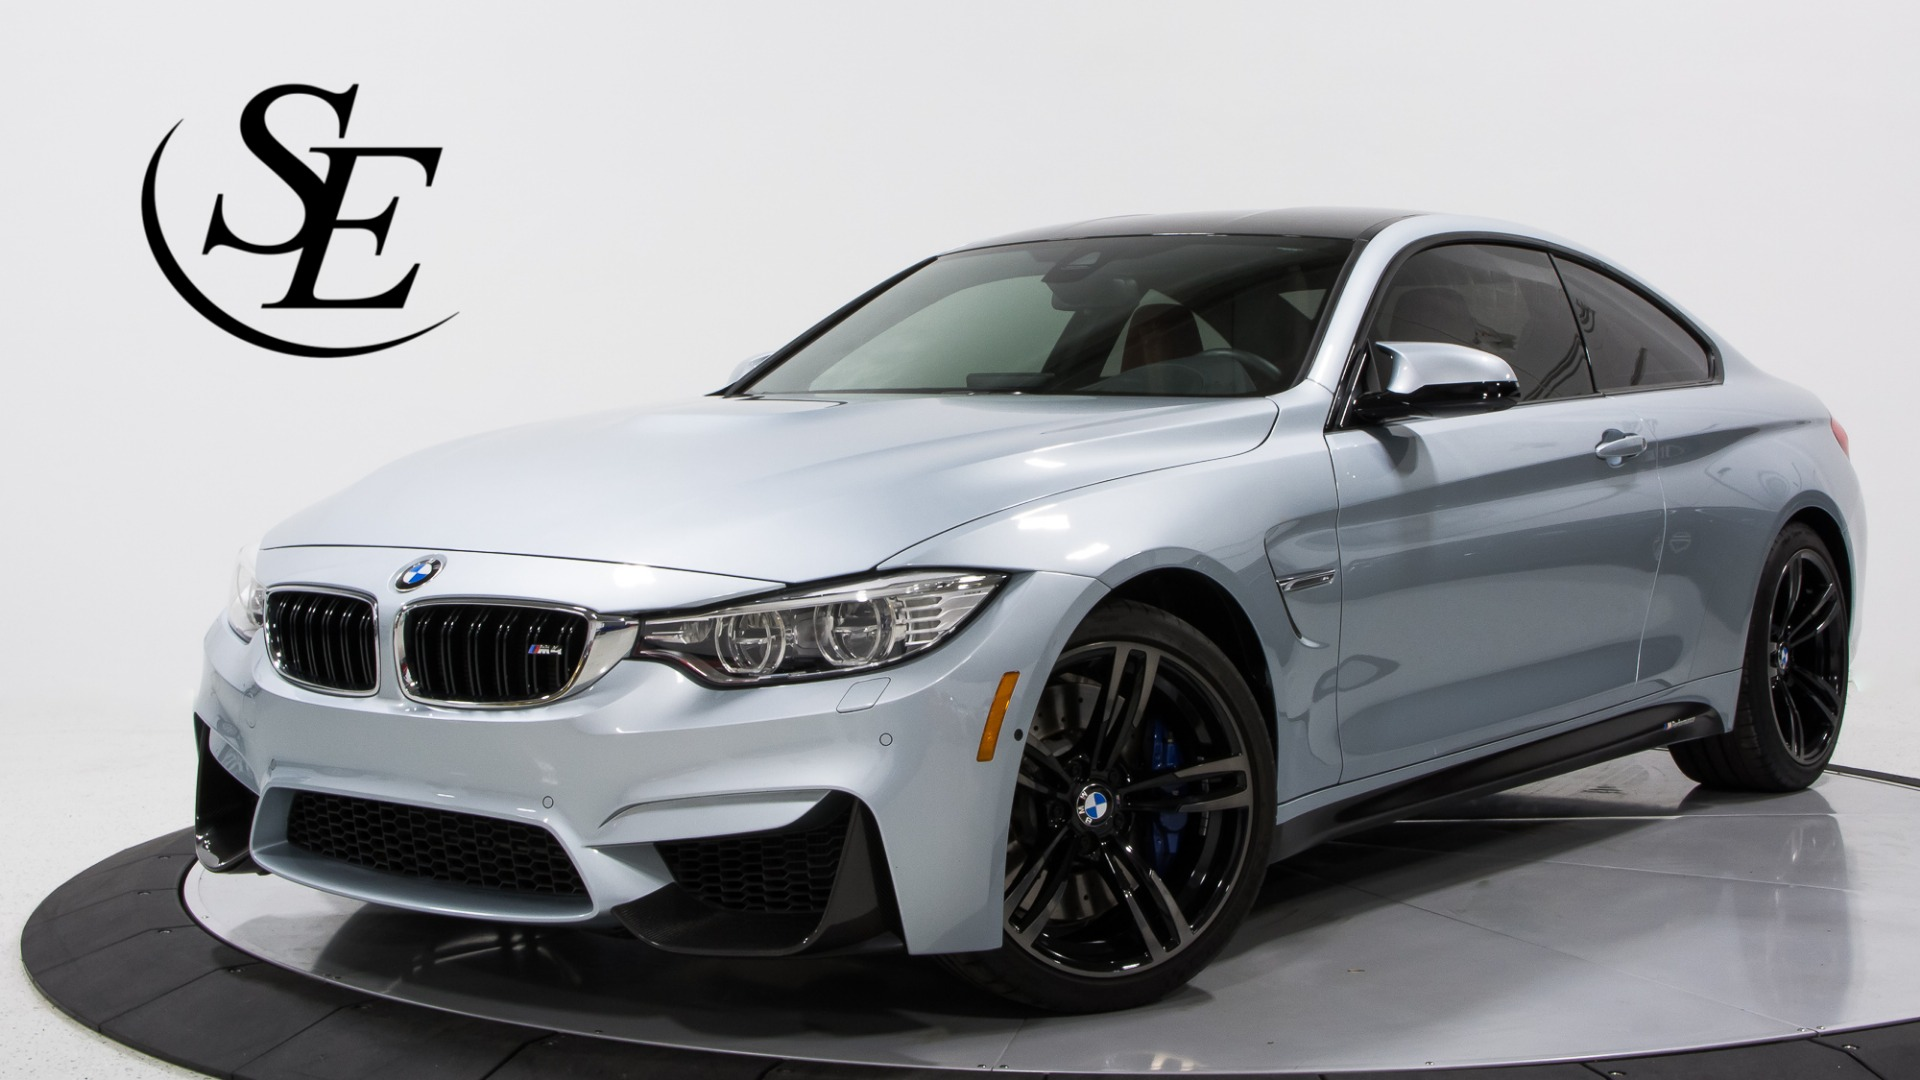 2015 bmw m4 stock # 22529 for sale near pompano beach, fl | fl bmw